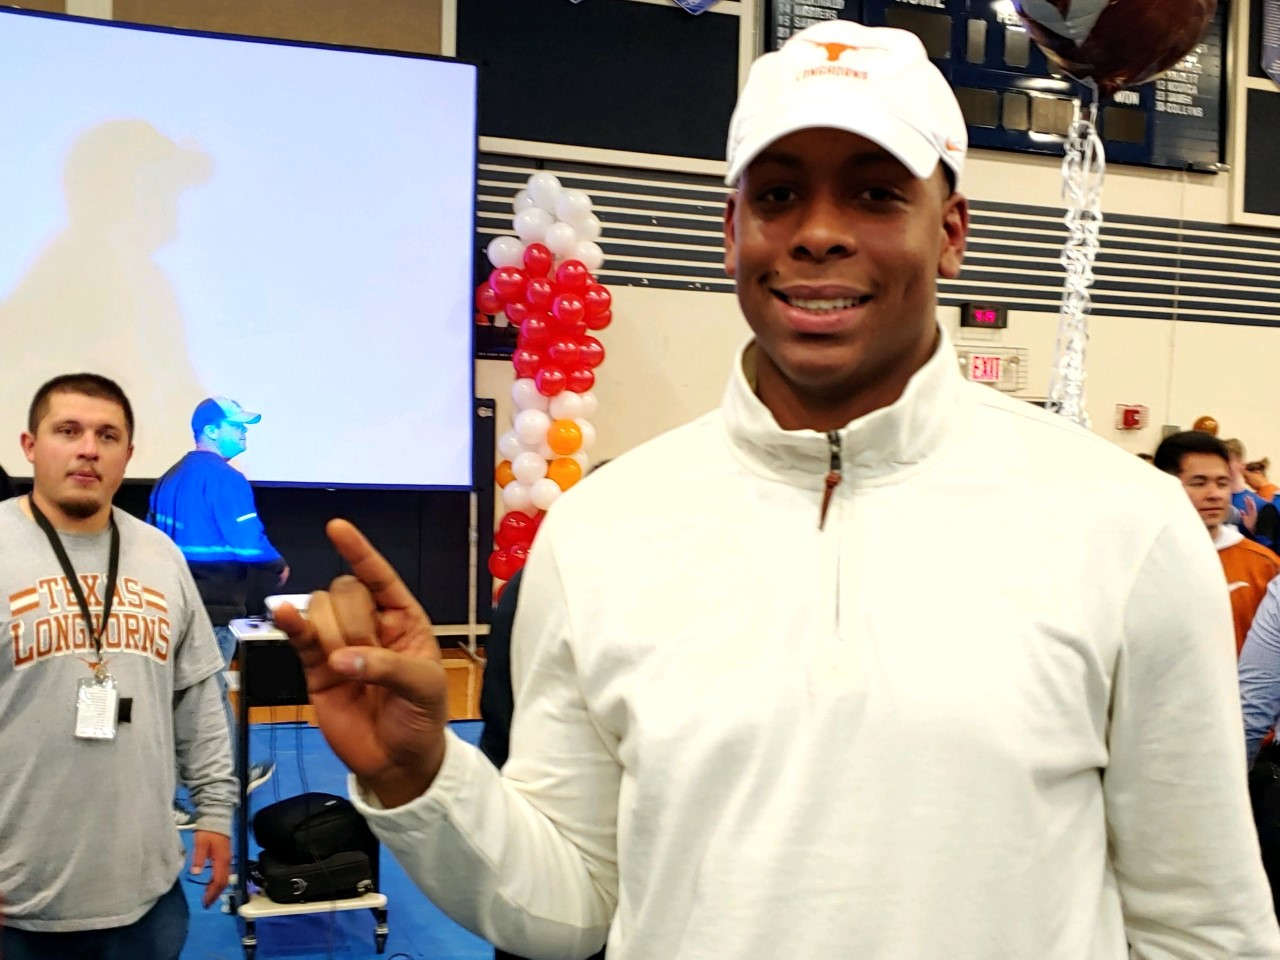 Alfred Collins hook em Longhorns